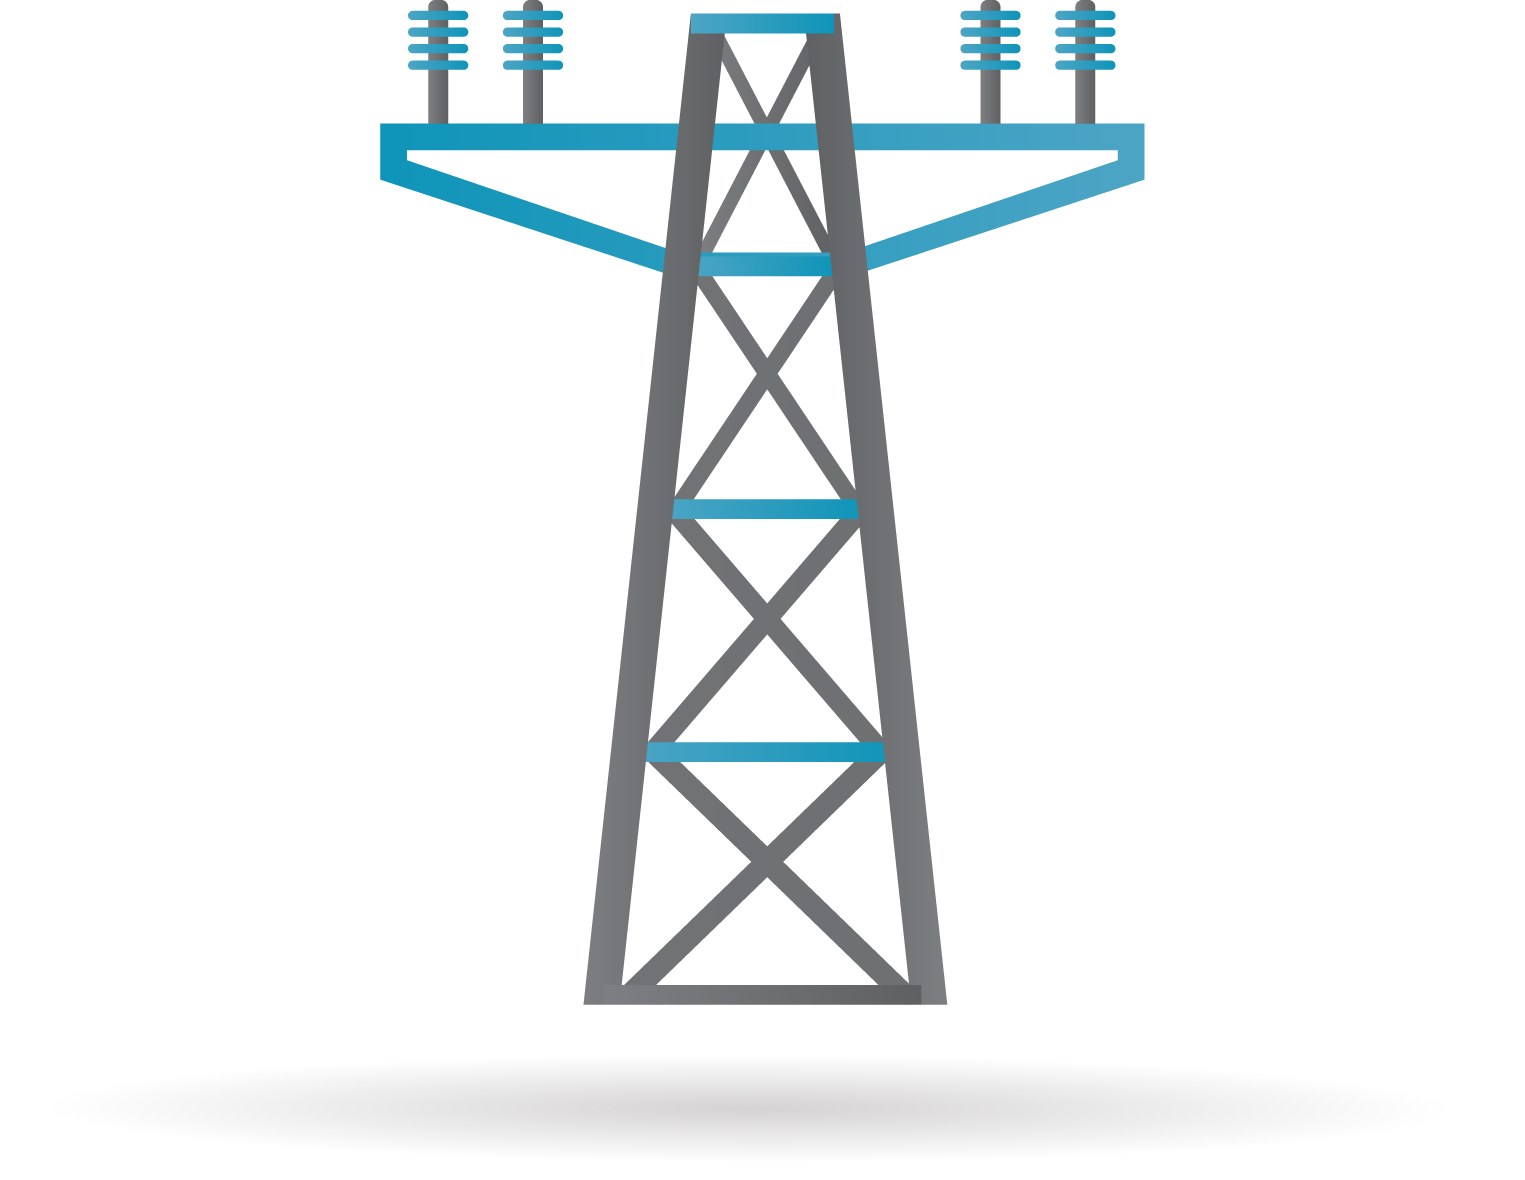 Transmission line graphic